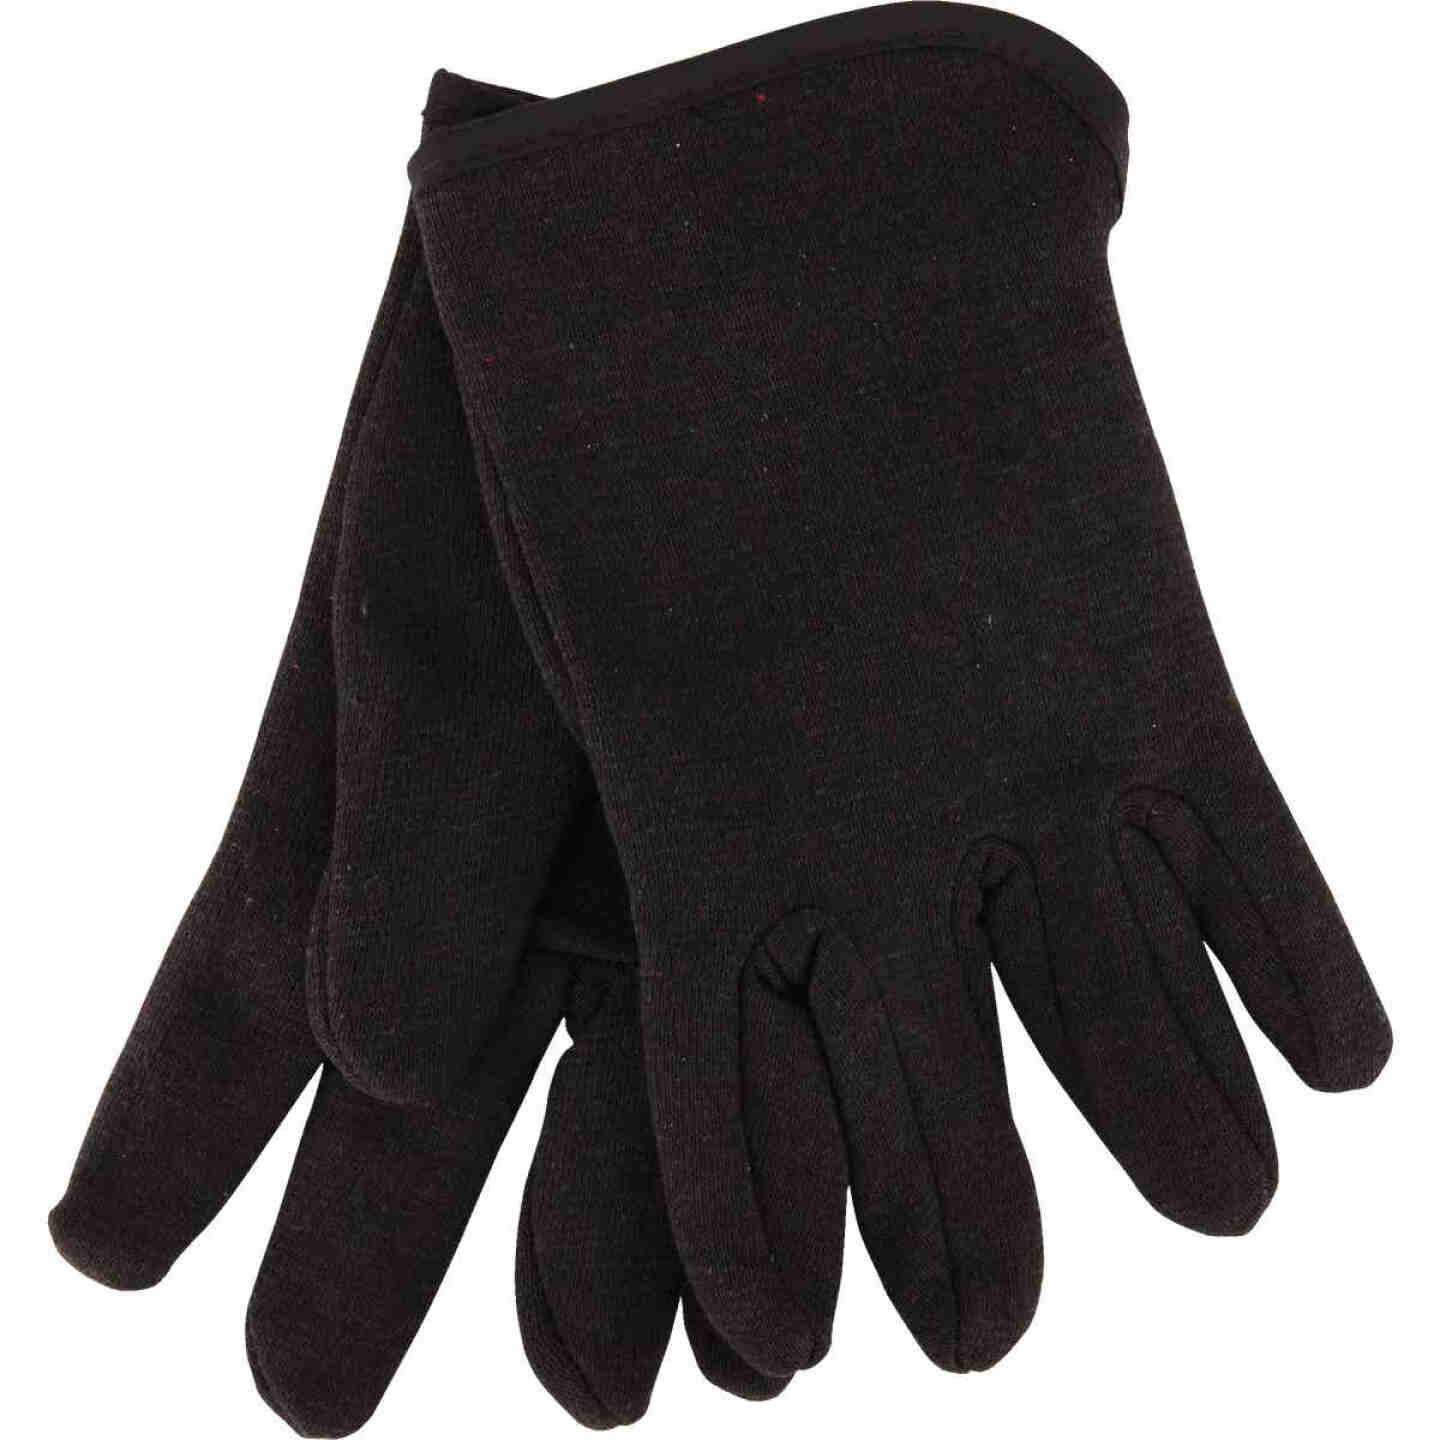 Do it Men's Large Lined Jersey Work Glove Image 5